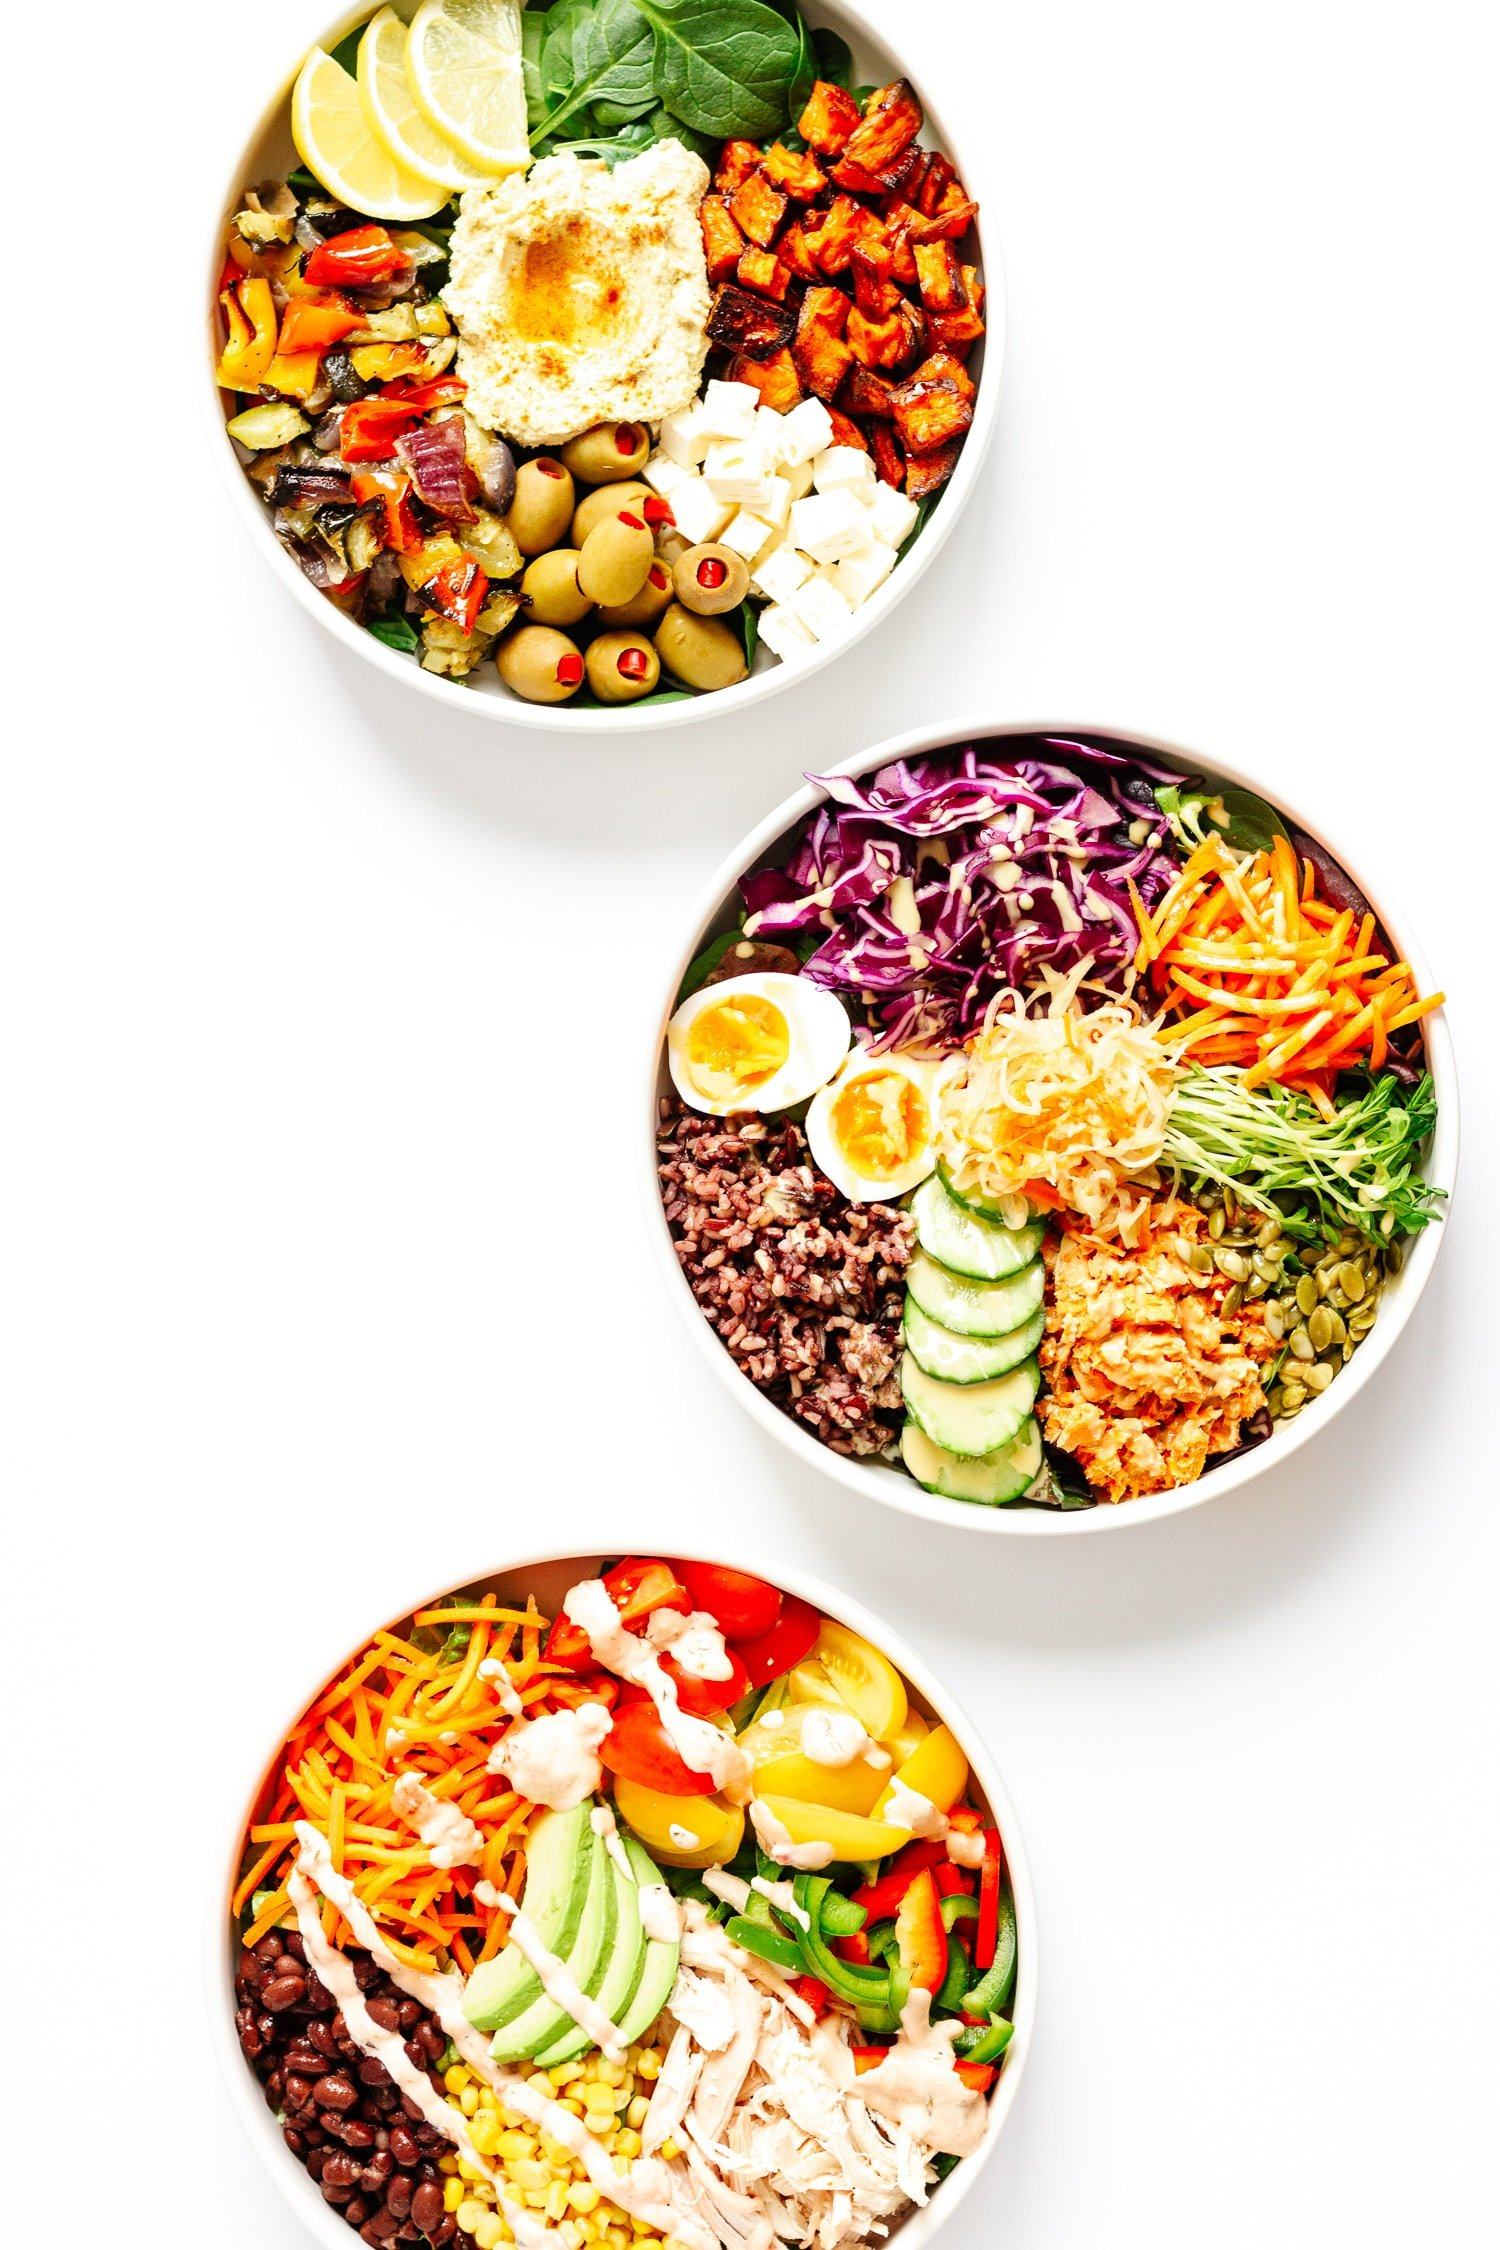 Three different healthy nourish bowls arranged in a curve on a white background.